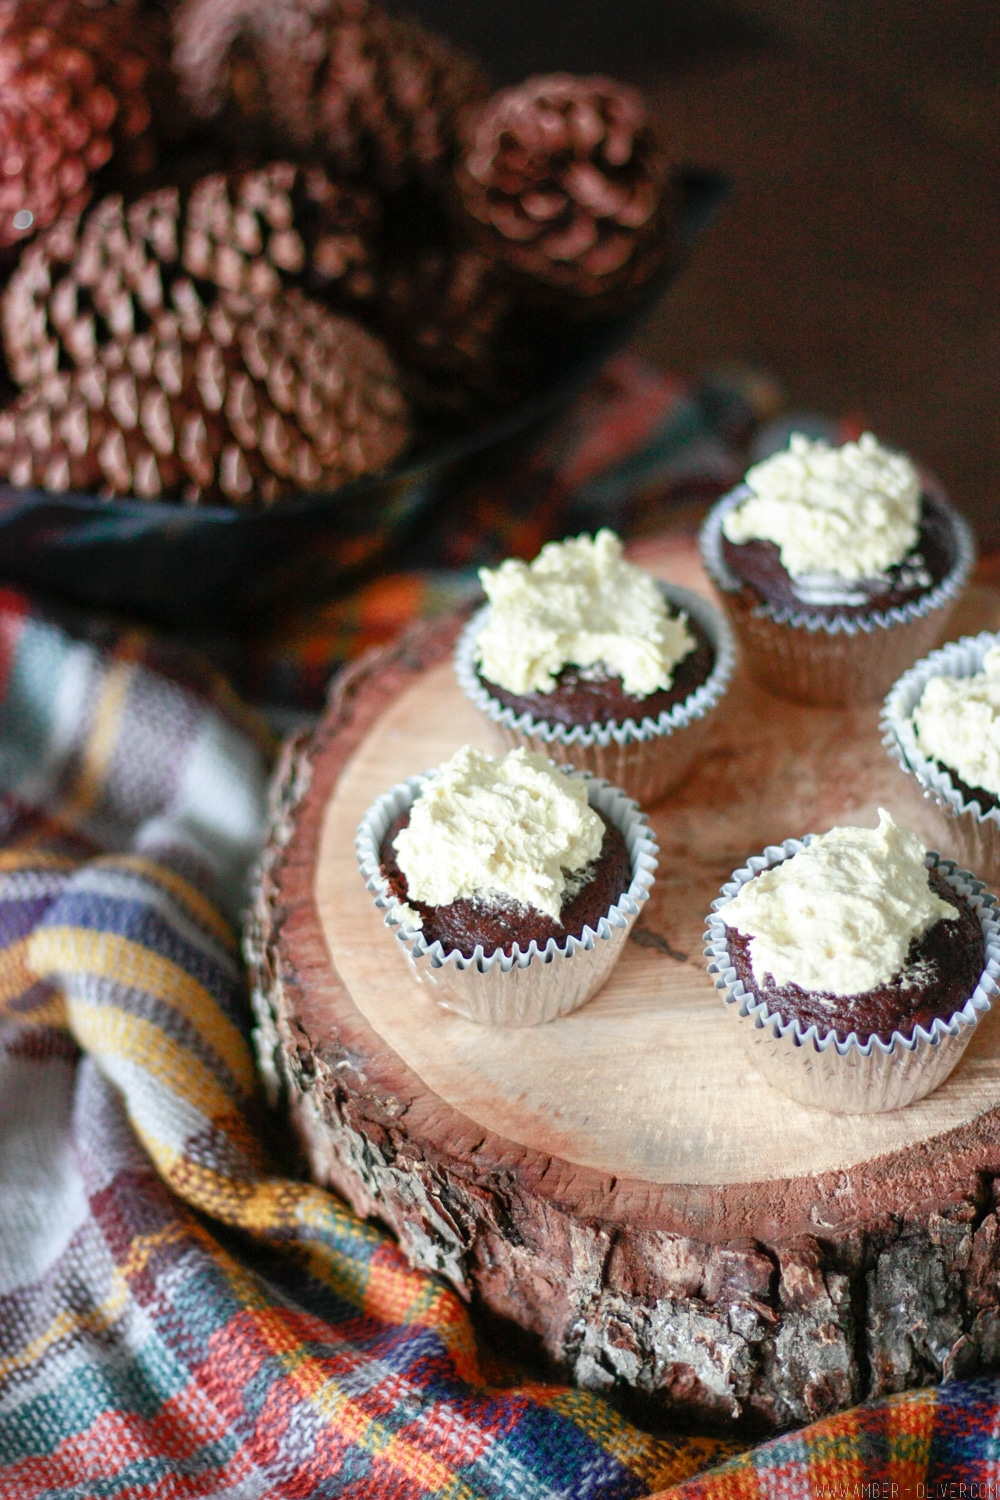 The BEST chocolate cupcakes use only 2 ingredients!